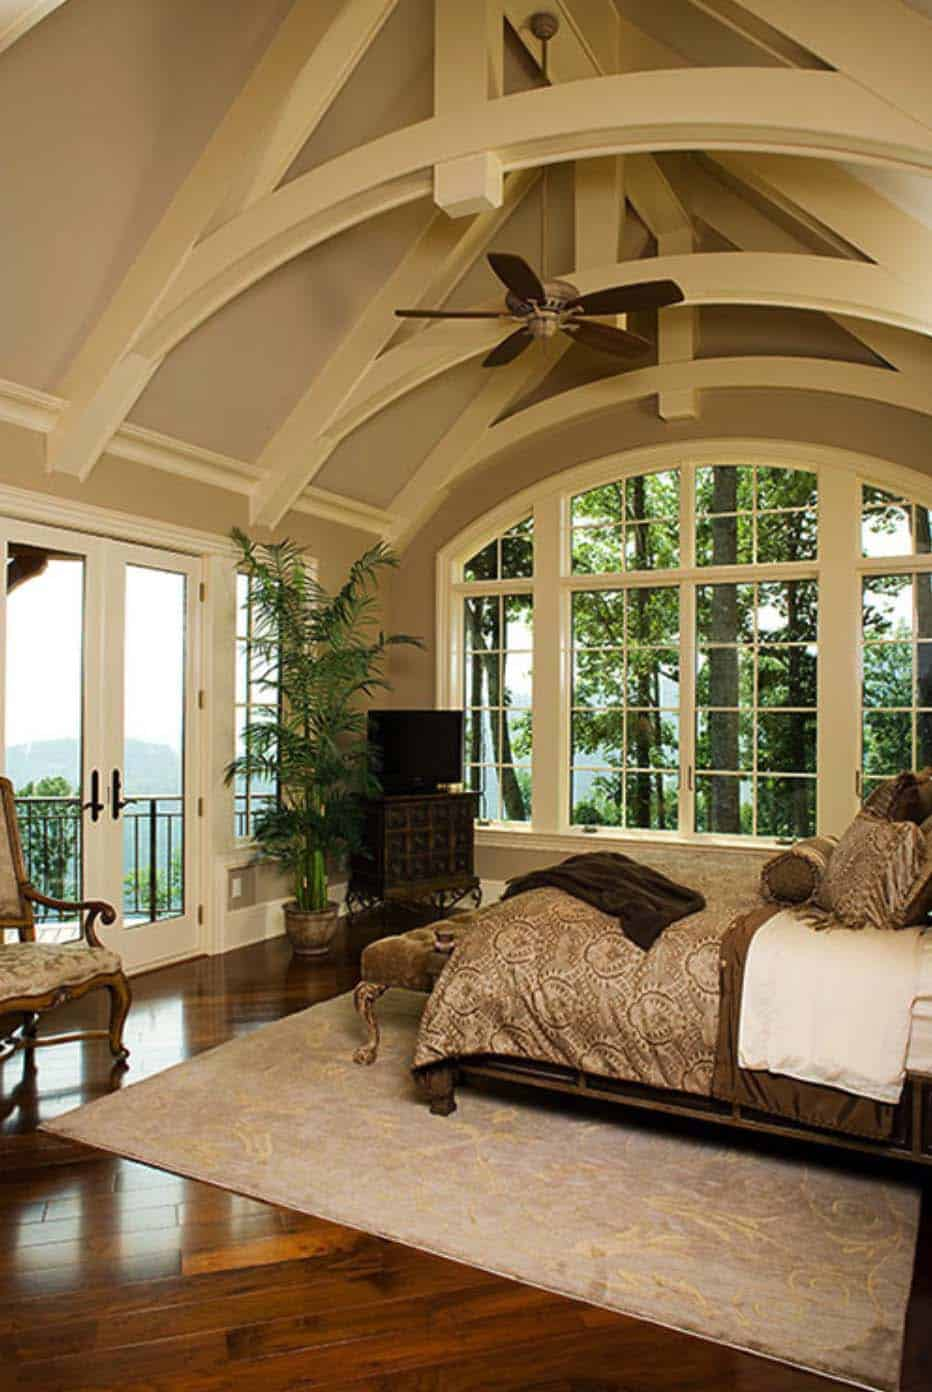 33 stunning master bedroom retreats with vaulted ceilings for Home plans with vaulted ceilings